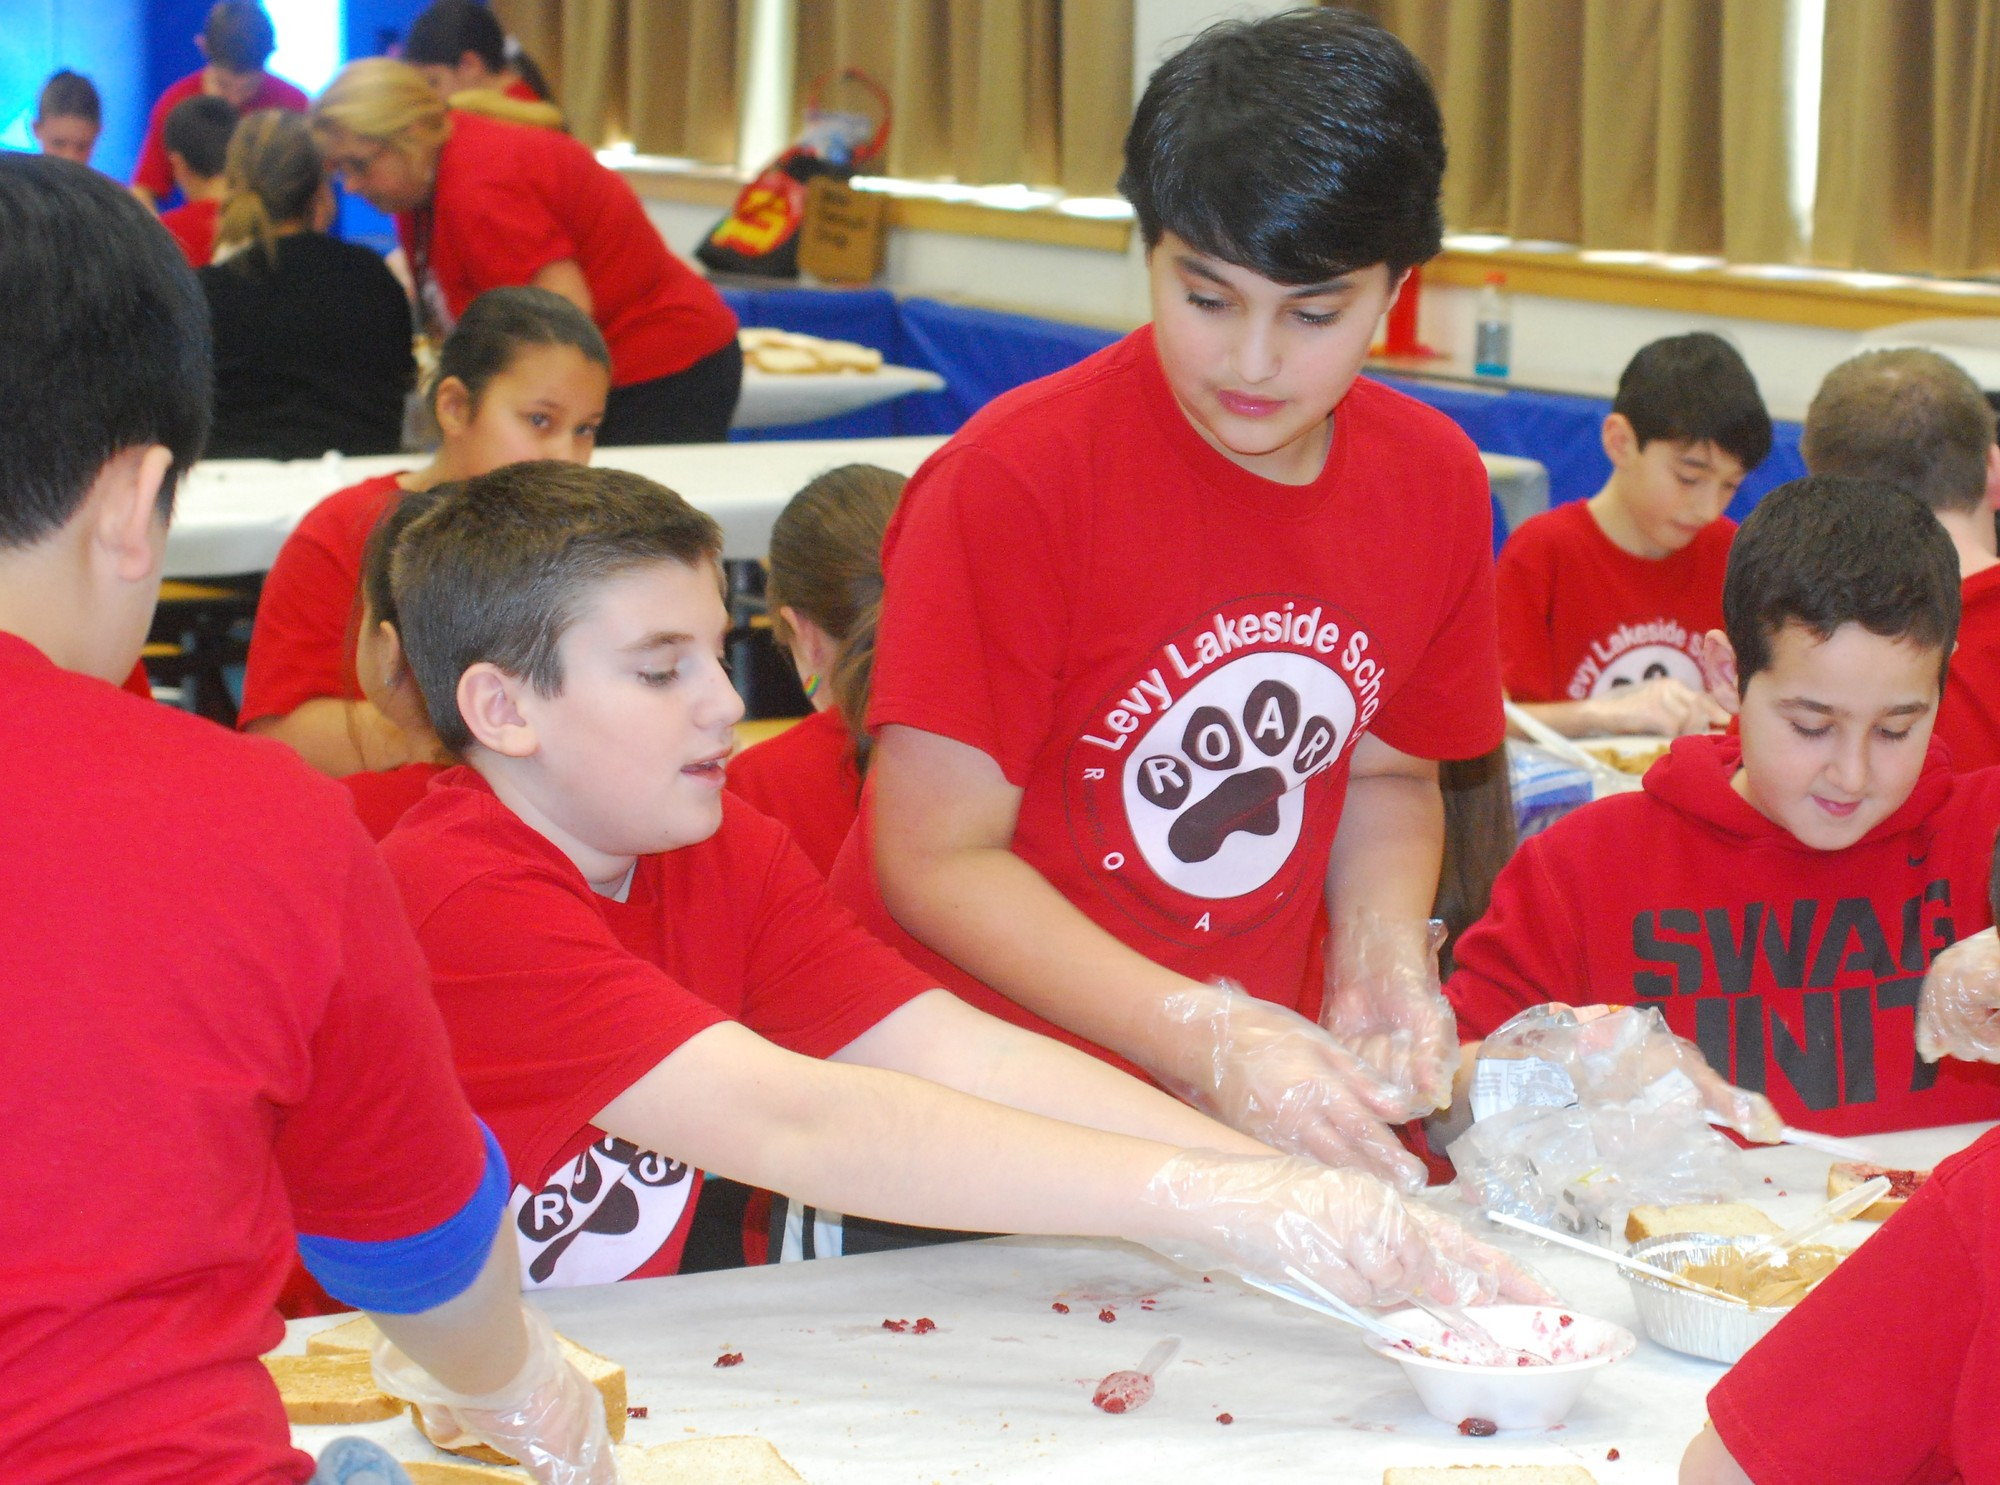 Levy-Lakeside Elementary School sixth-graders made more than 2,000 sandwiches for the homeless last Friday afternoon. Above, Ross Oginsky, from left, Josh Wolk and Tamer Eldidi hard at work.